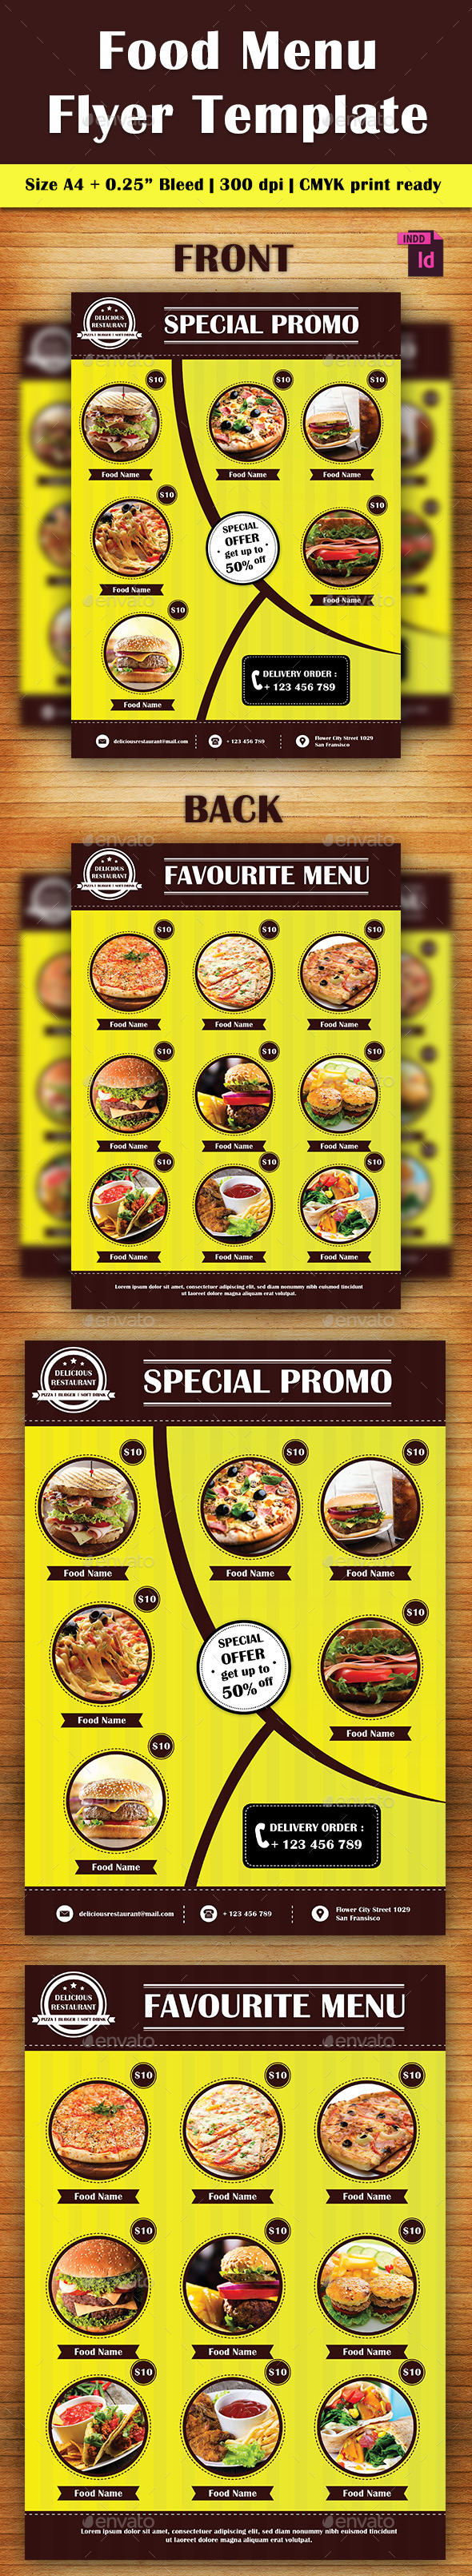 Food Flyer Template Vol. 3